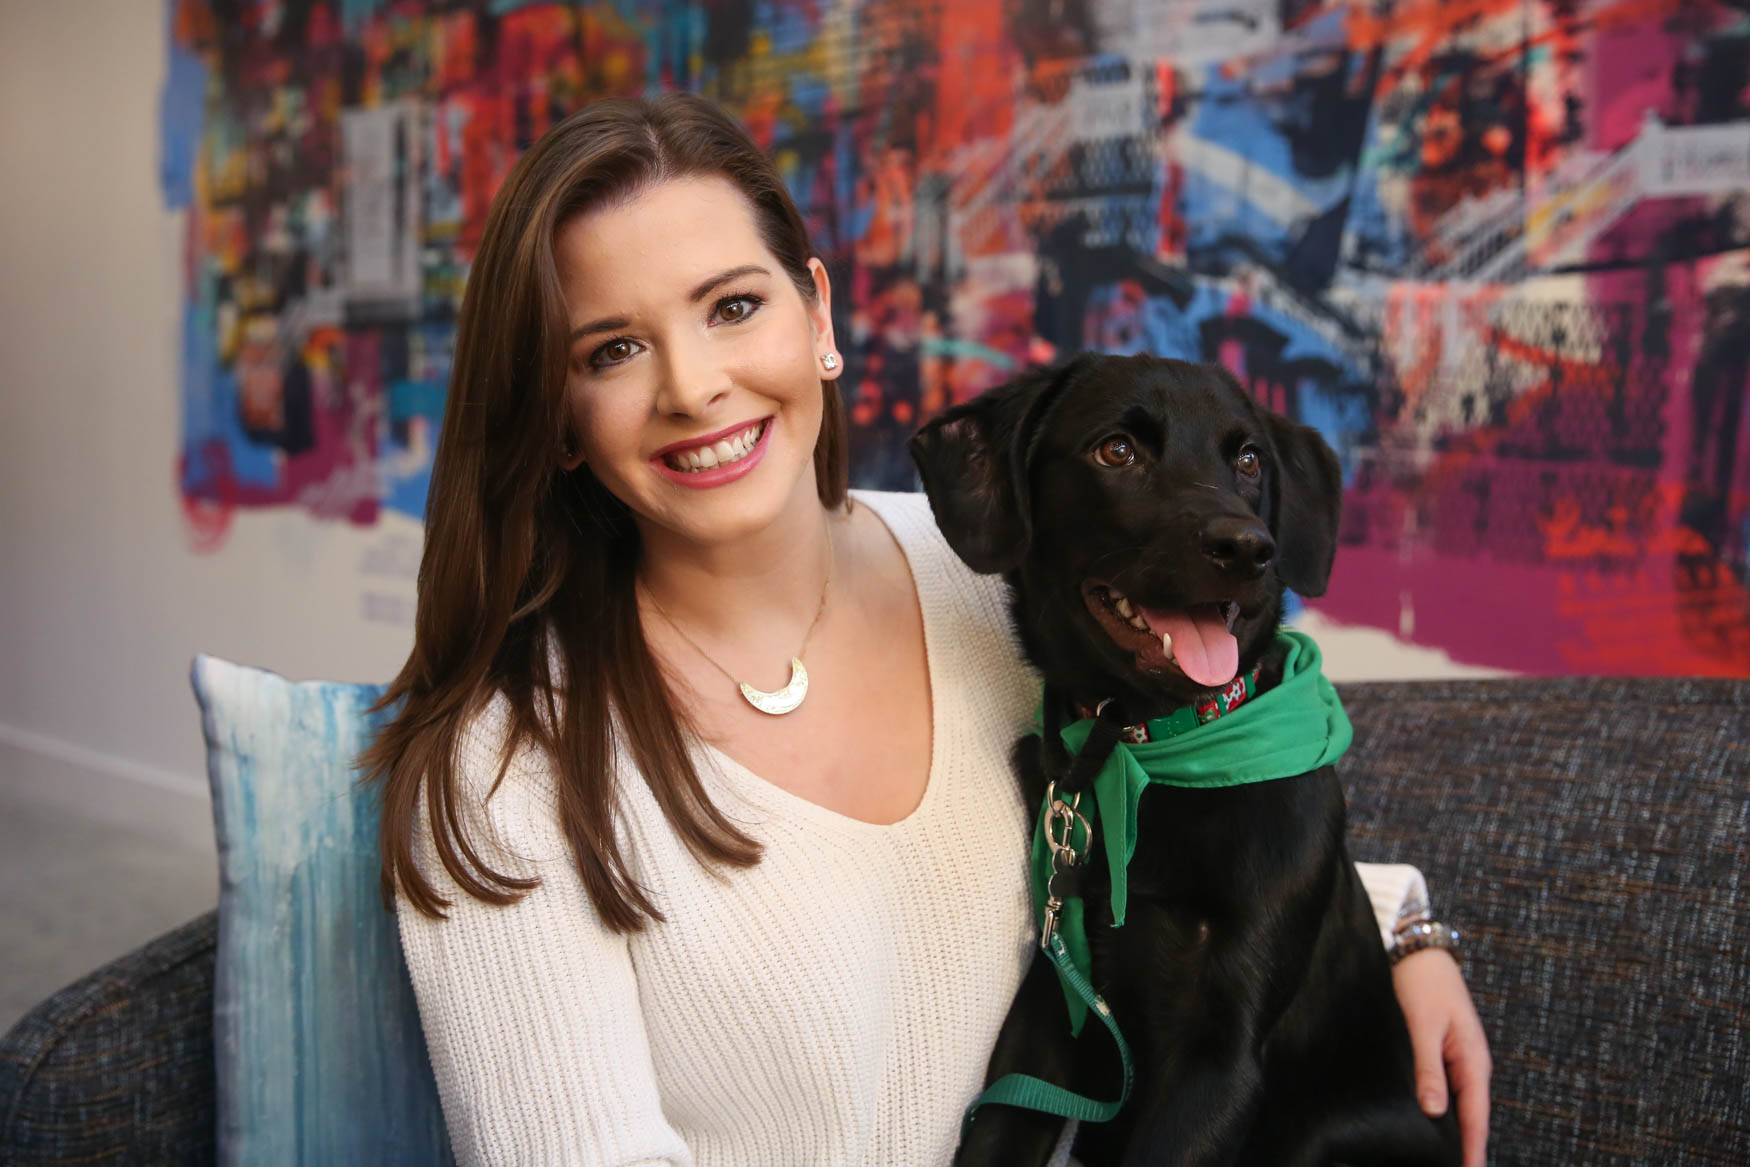 The good news is Waggs was ADOPTED right after our shoot! Photo location: Moxy Washington, D.C. Downtown (Image: Amanda Andrade-Rhoades/ DC Refined)